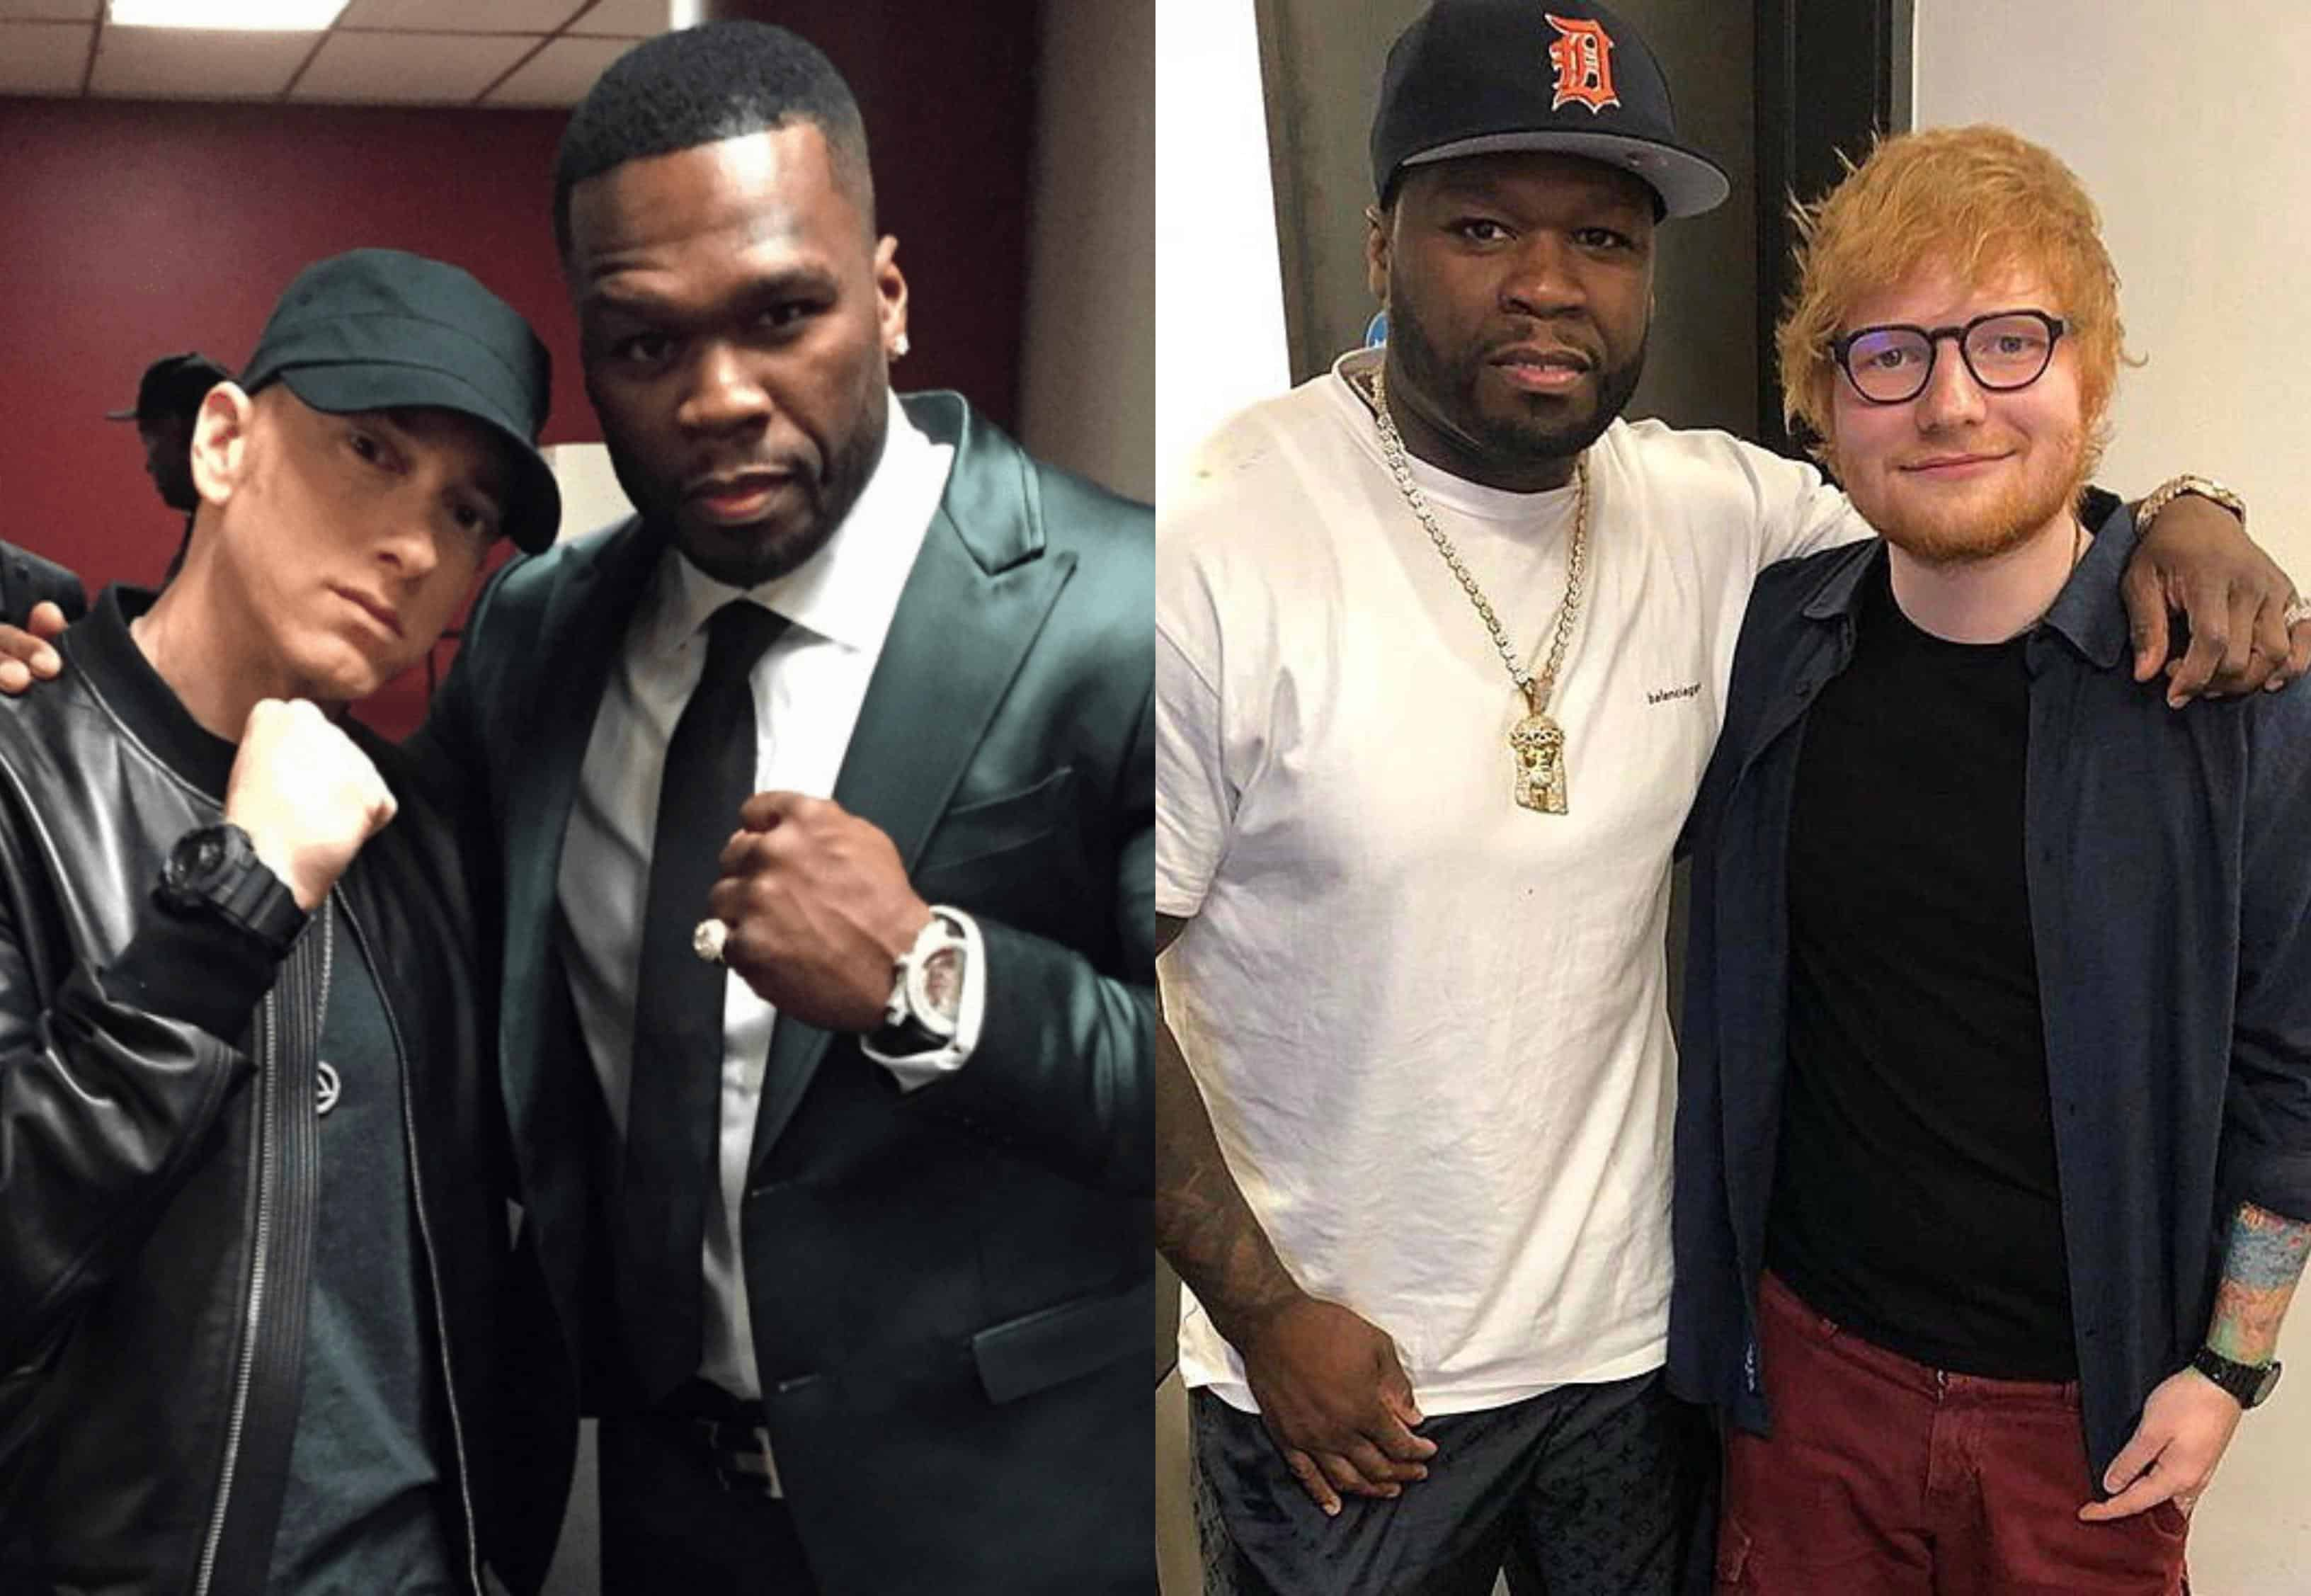 20f1388168e 50 Cent Reveals He Recorded A New Song with Eminem   Ed Sheeran